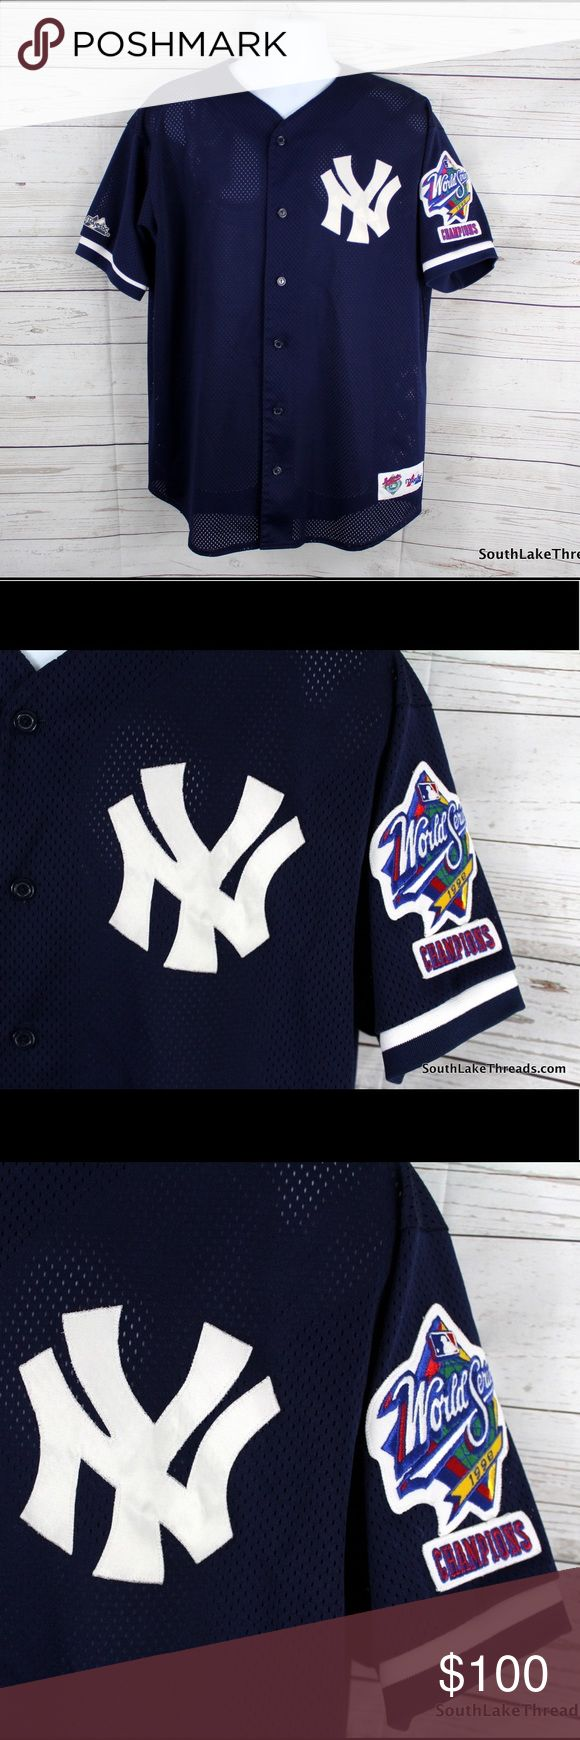 """NY Yankees 1998 World Series Authentic Jersey XL This is an authentic Majestic Jersey Men's Size XL from the New York Yankees 1998 World Series Championship. Have always been a Jeter fan but just need to downsize a few jerseys. Very Rare and you just don't find these 1998 jerseys often. Detailed Measurements [Measured by hand laying flat on table]• Sleeve: 9.5"""" inches • Underarms: 24.5"""" inches Length: 32"""" inches • 5 Star Rating please purchase with confidence. Orders ship in 1 day or less…"""